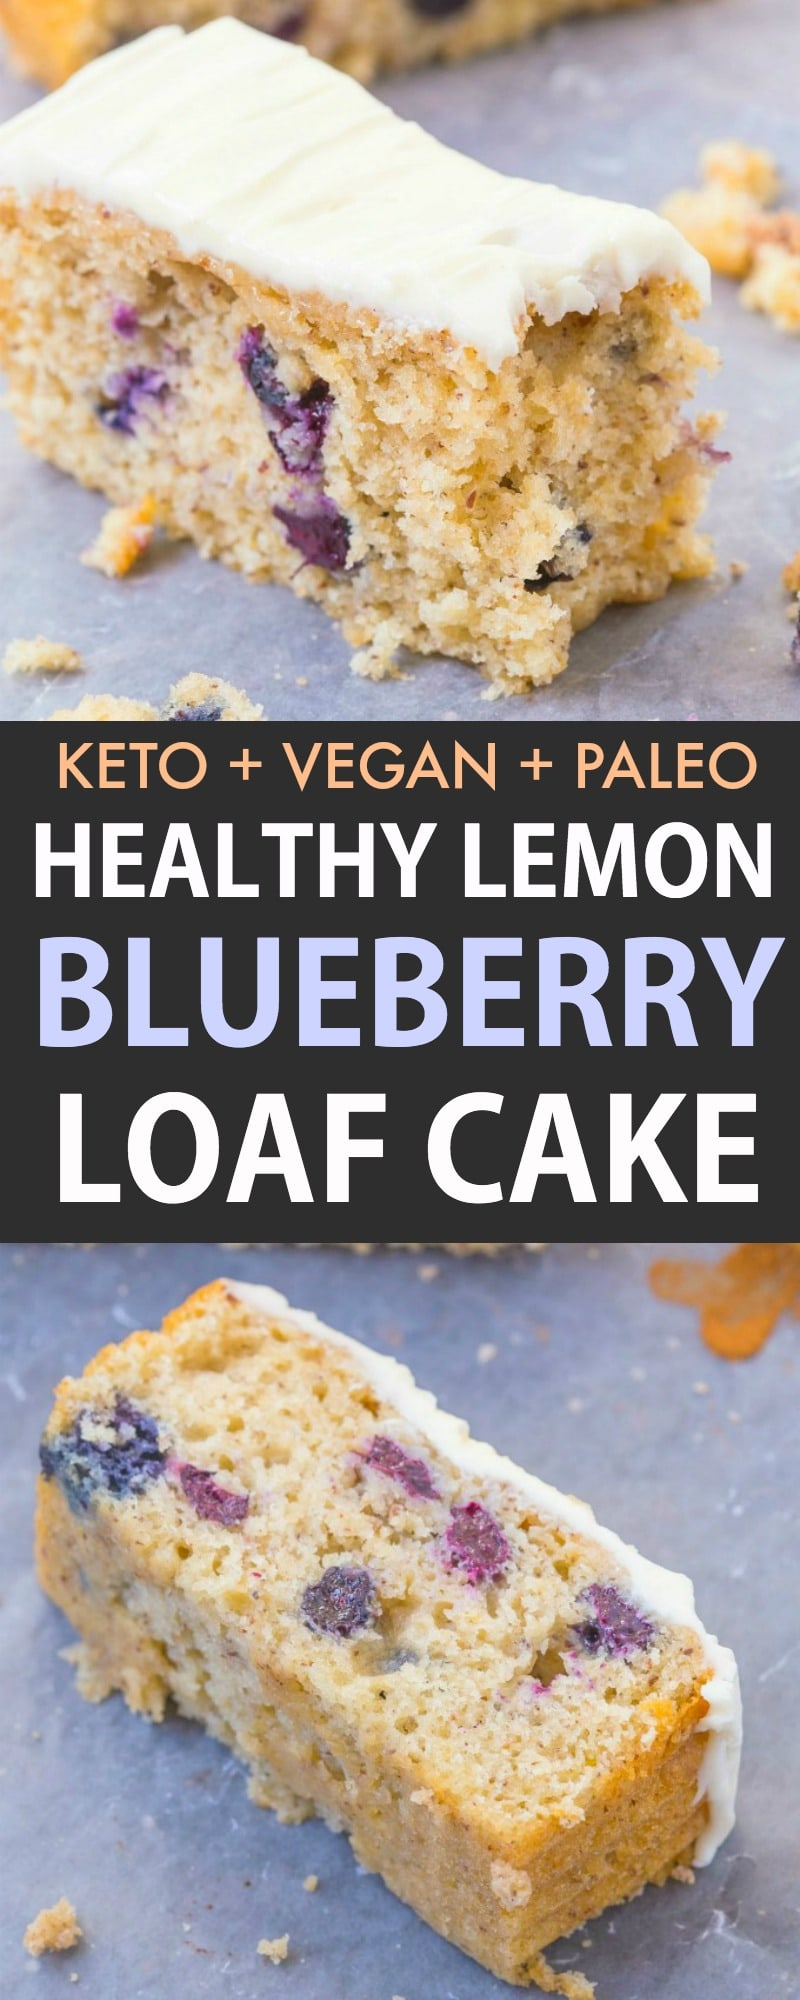 An easy recipe for a healthy lemon blueberry loaf cake that is like a pound cake!